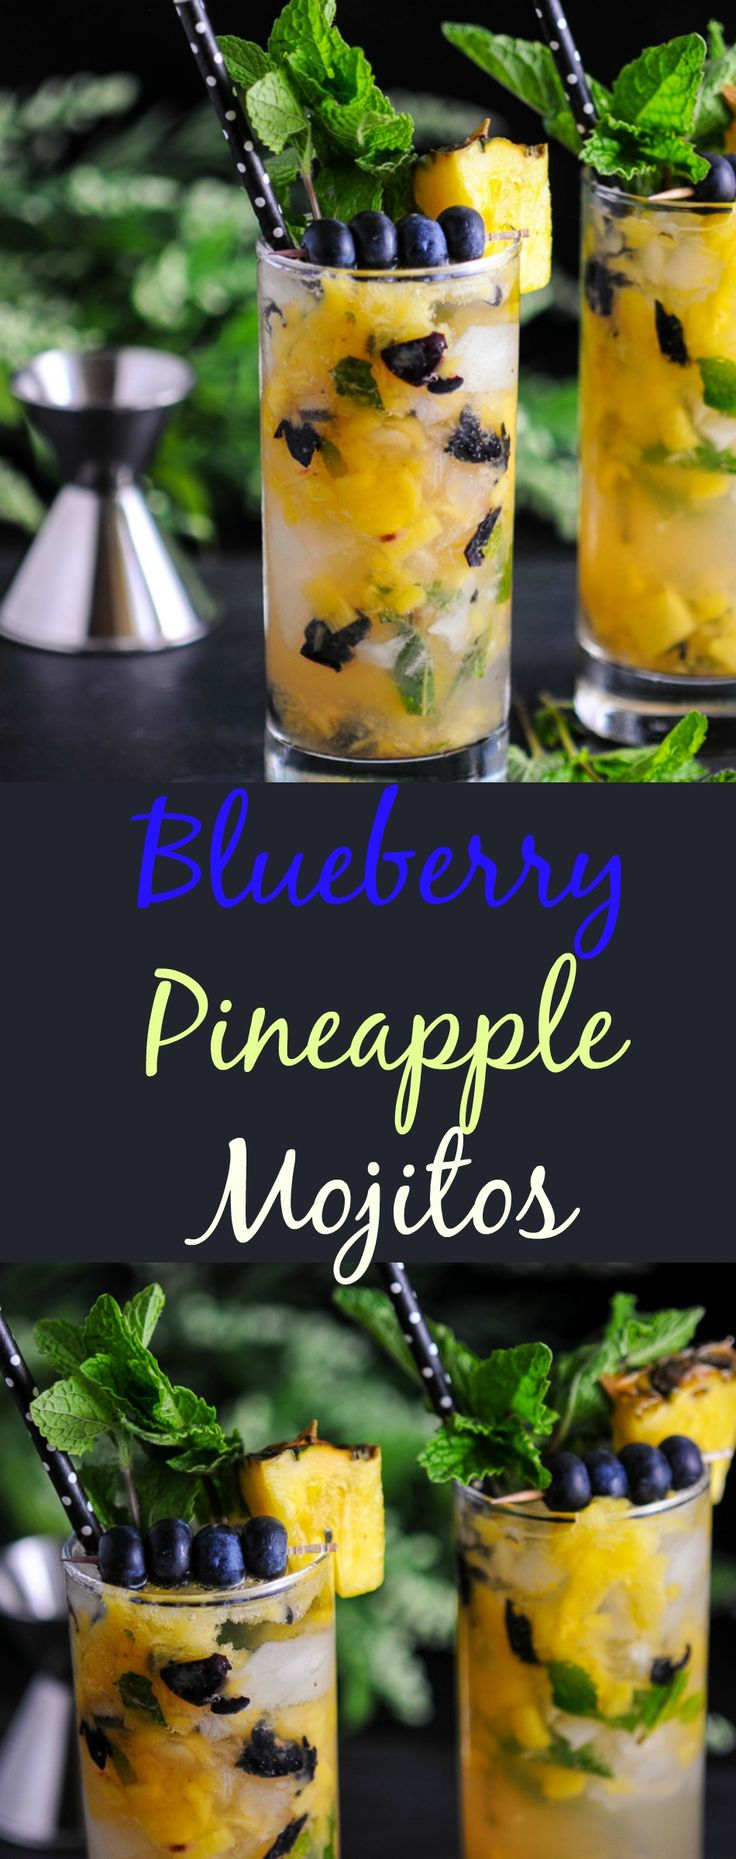 These Blueberry Pineapple Mojitos are a mix of rum, mint, simple syrup, blueberries, and pineapple. This cocktail is easy to make. Just muddle and enjoy!